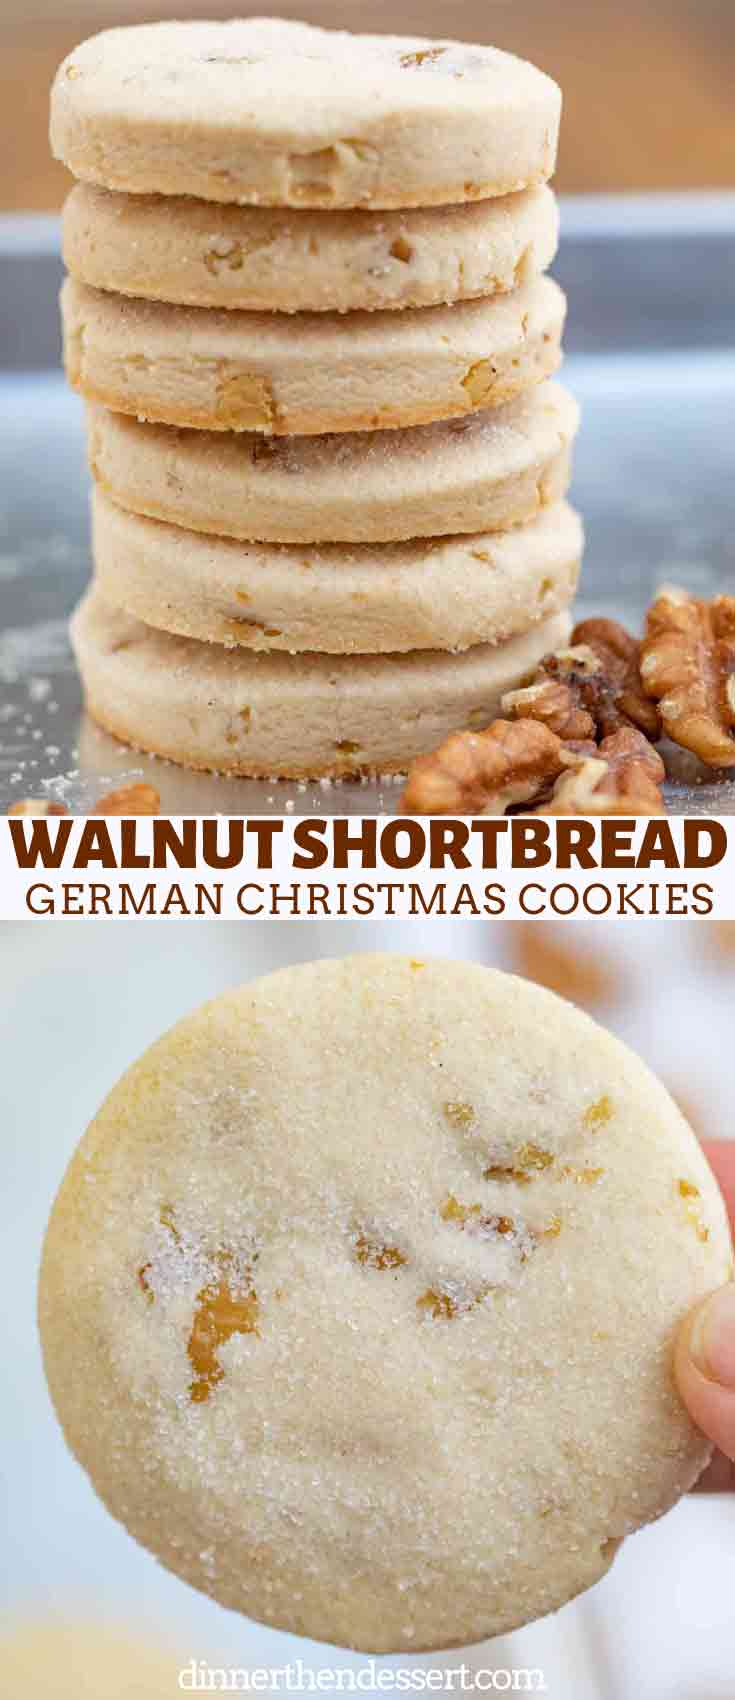 Walnut Shortbread German Christmas Cookies Dinner Then Dessert